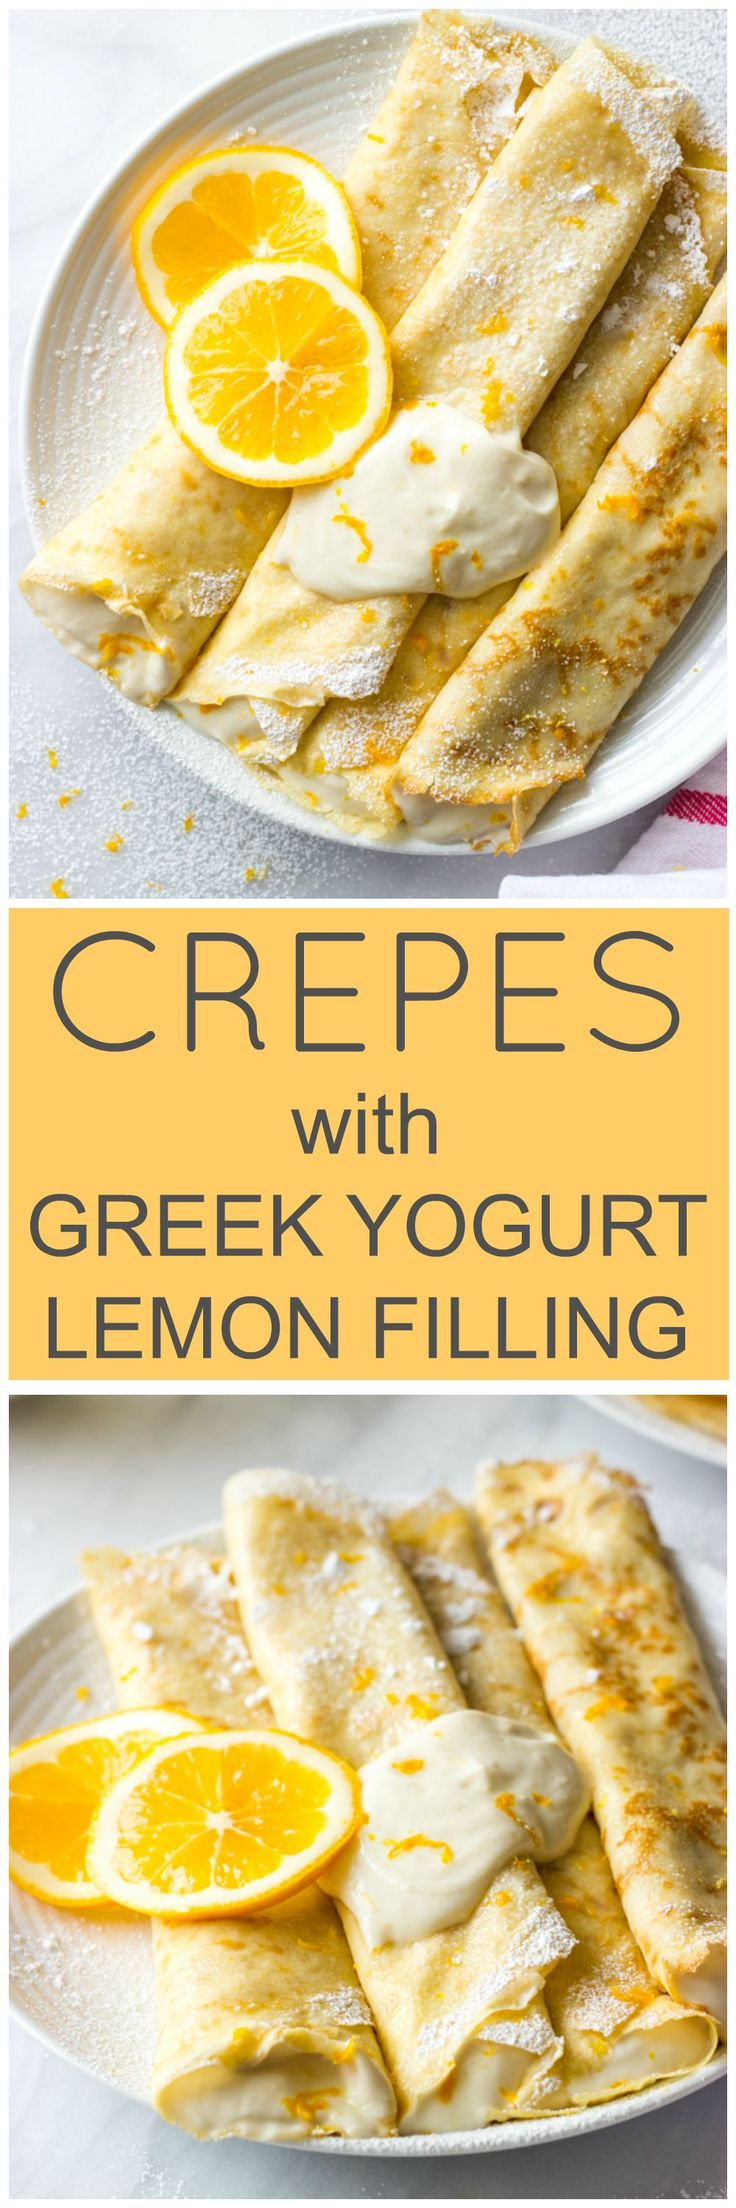 Blender Crepes with Greek Yogurt Lemon Filling - honey sweetened crepes made in a blender and served with healthy greek yogurt lemon filling | littlebroken.com @littlebroken